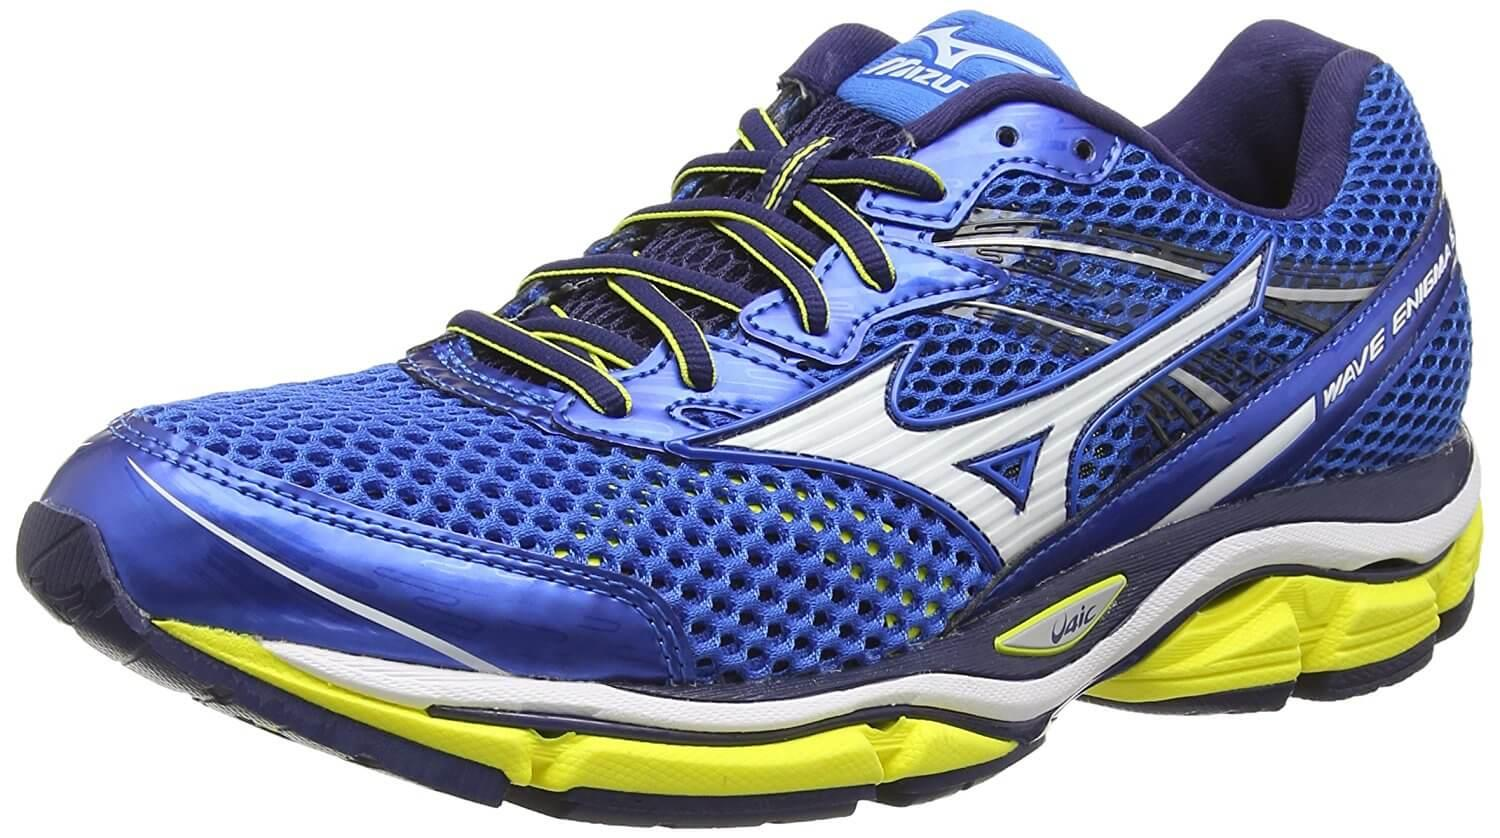 the Mizuno Wave Enigma 5 is a comfortable, long-lasting running shoe